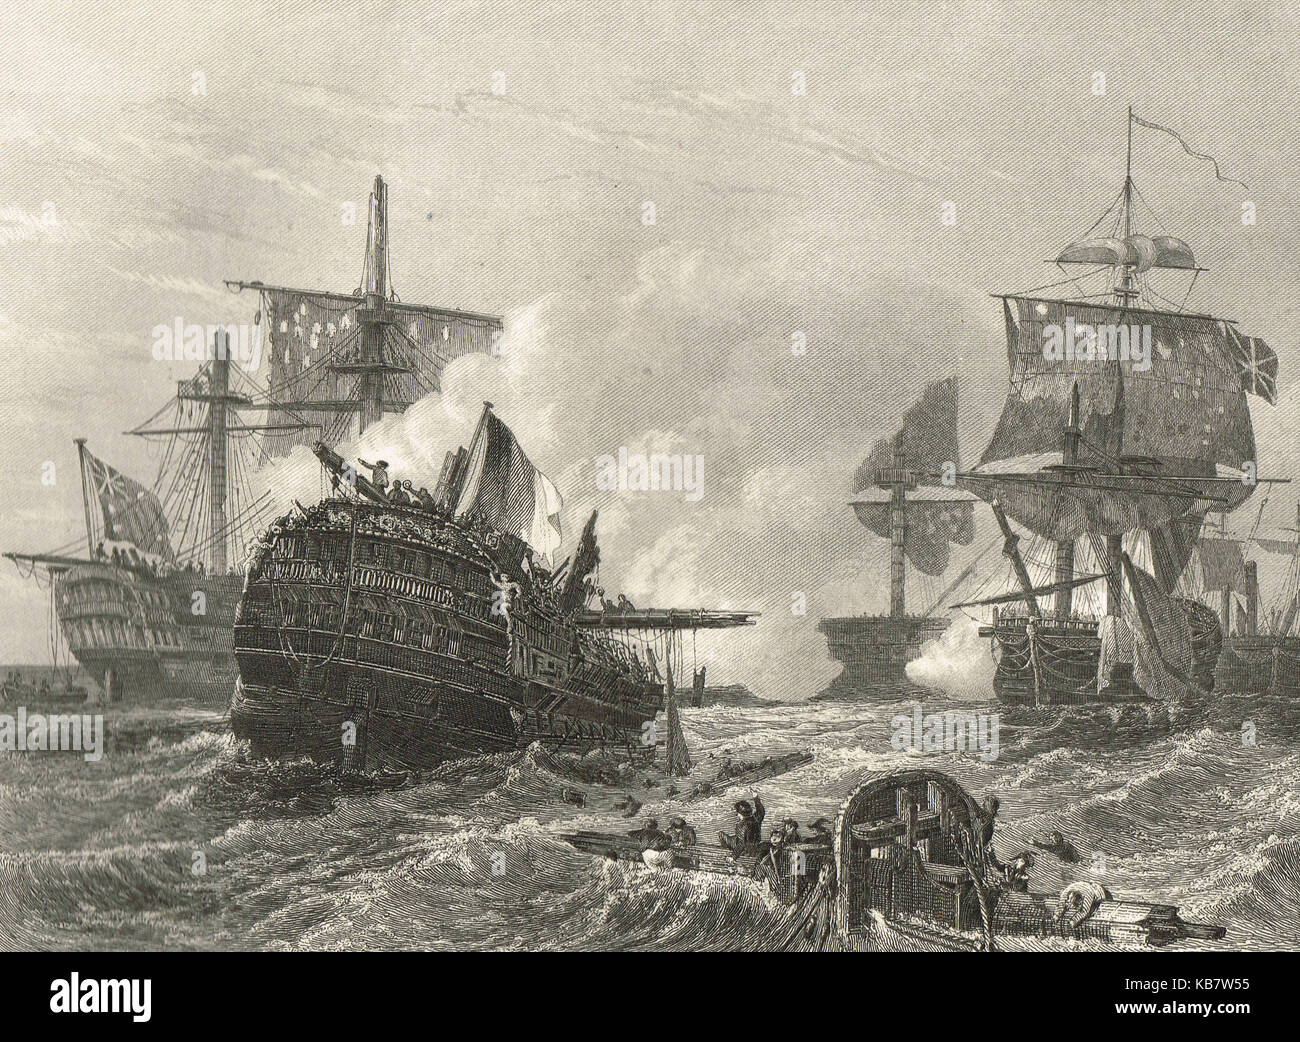 Lord Howe's victory, 1 June 1794, The Glorious First of June - Stock Image